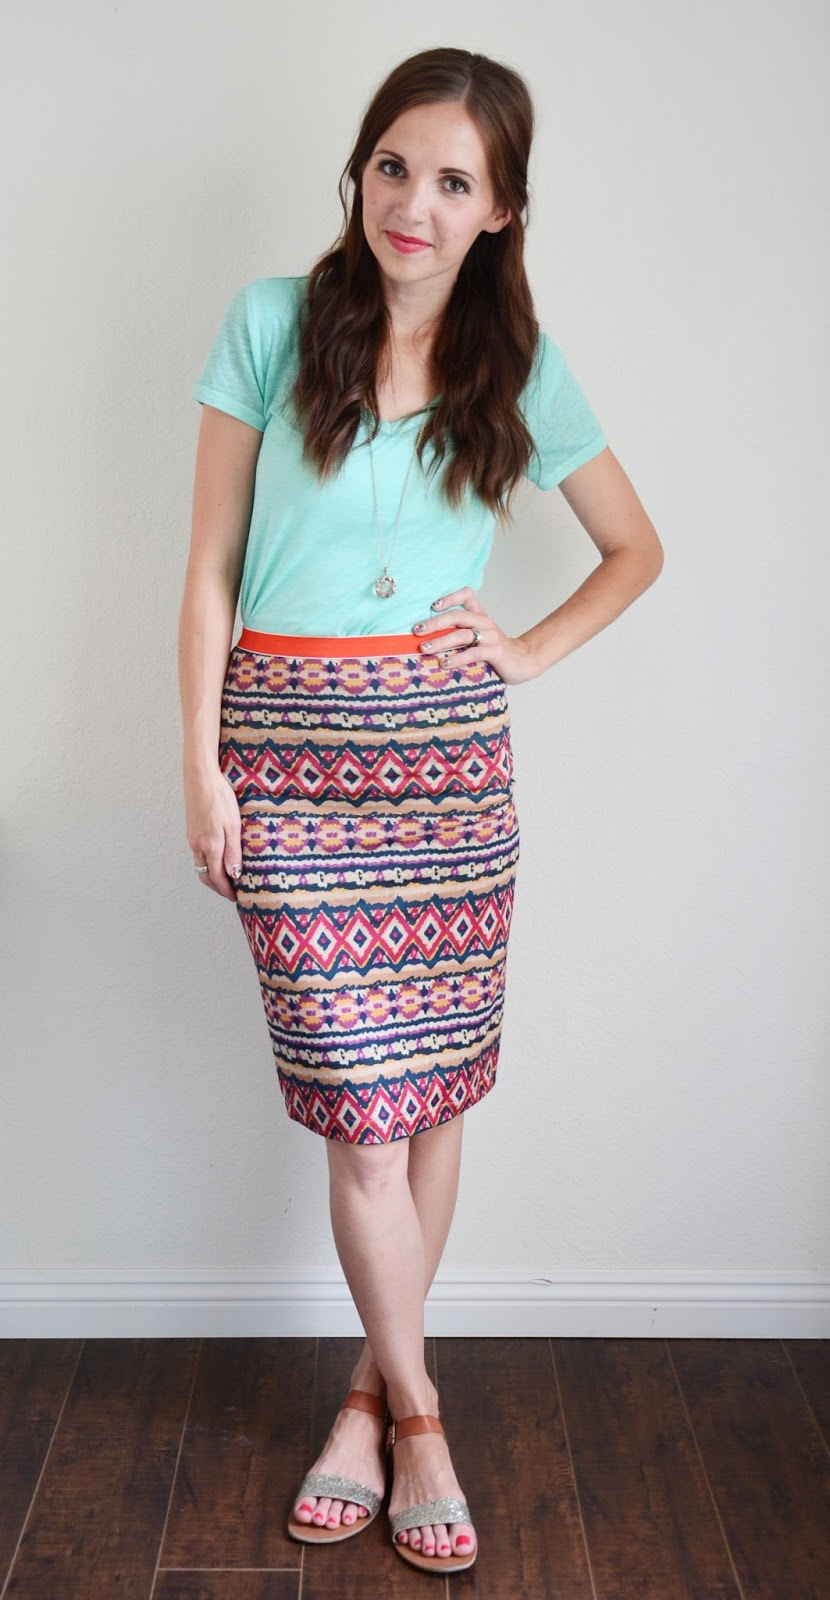 Knee Length Skirts And Tops 2014-2015 | Fashion Trends 2016-2017